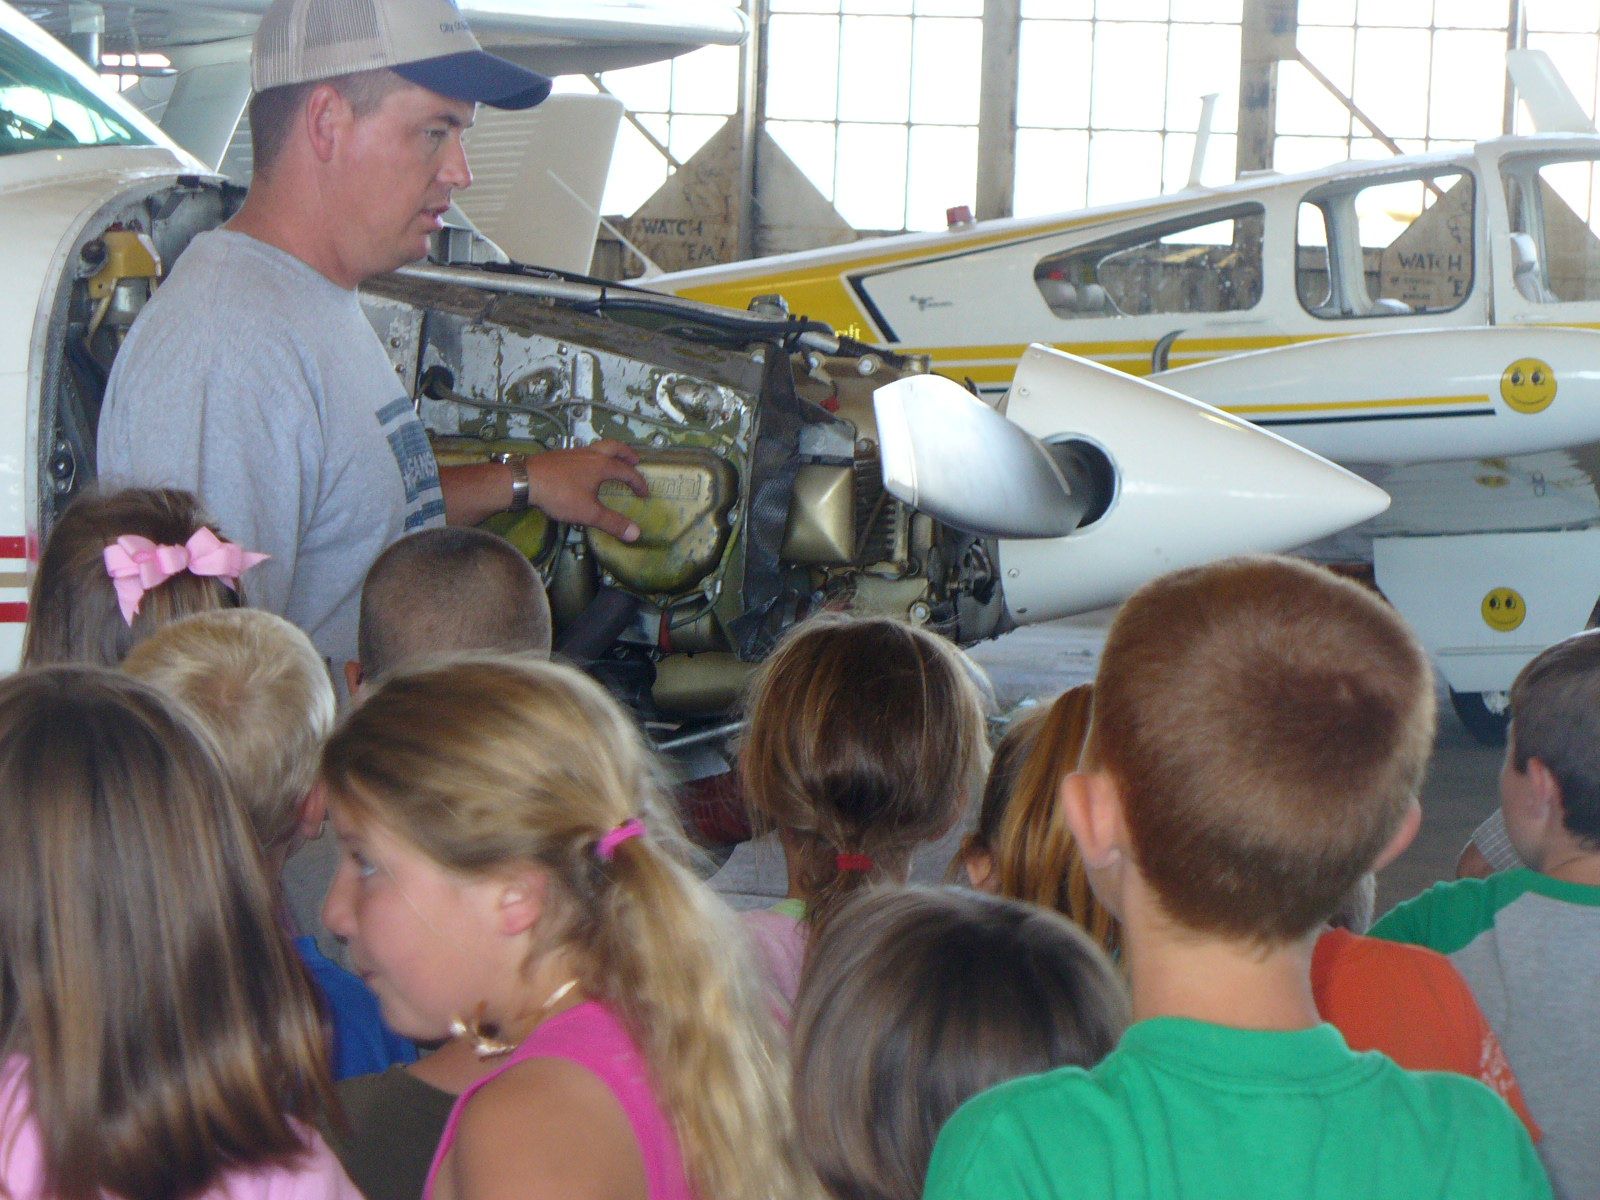 Elementary students gather around an airplane and look at the engine as part of a tour of the airport.